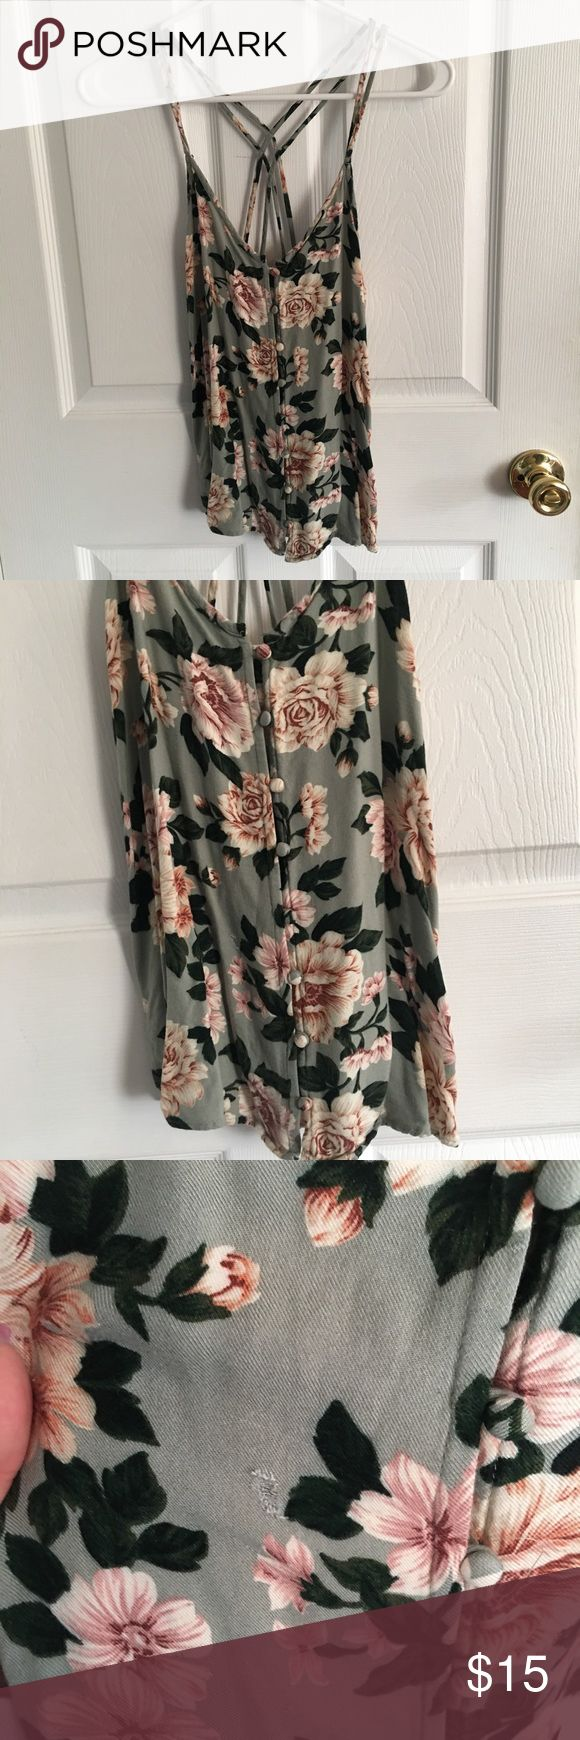 American Eagle Floral Strappy Top Floral strappy top with decorative buttons down the front American Eagle Outfitters Tops Camisoles